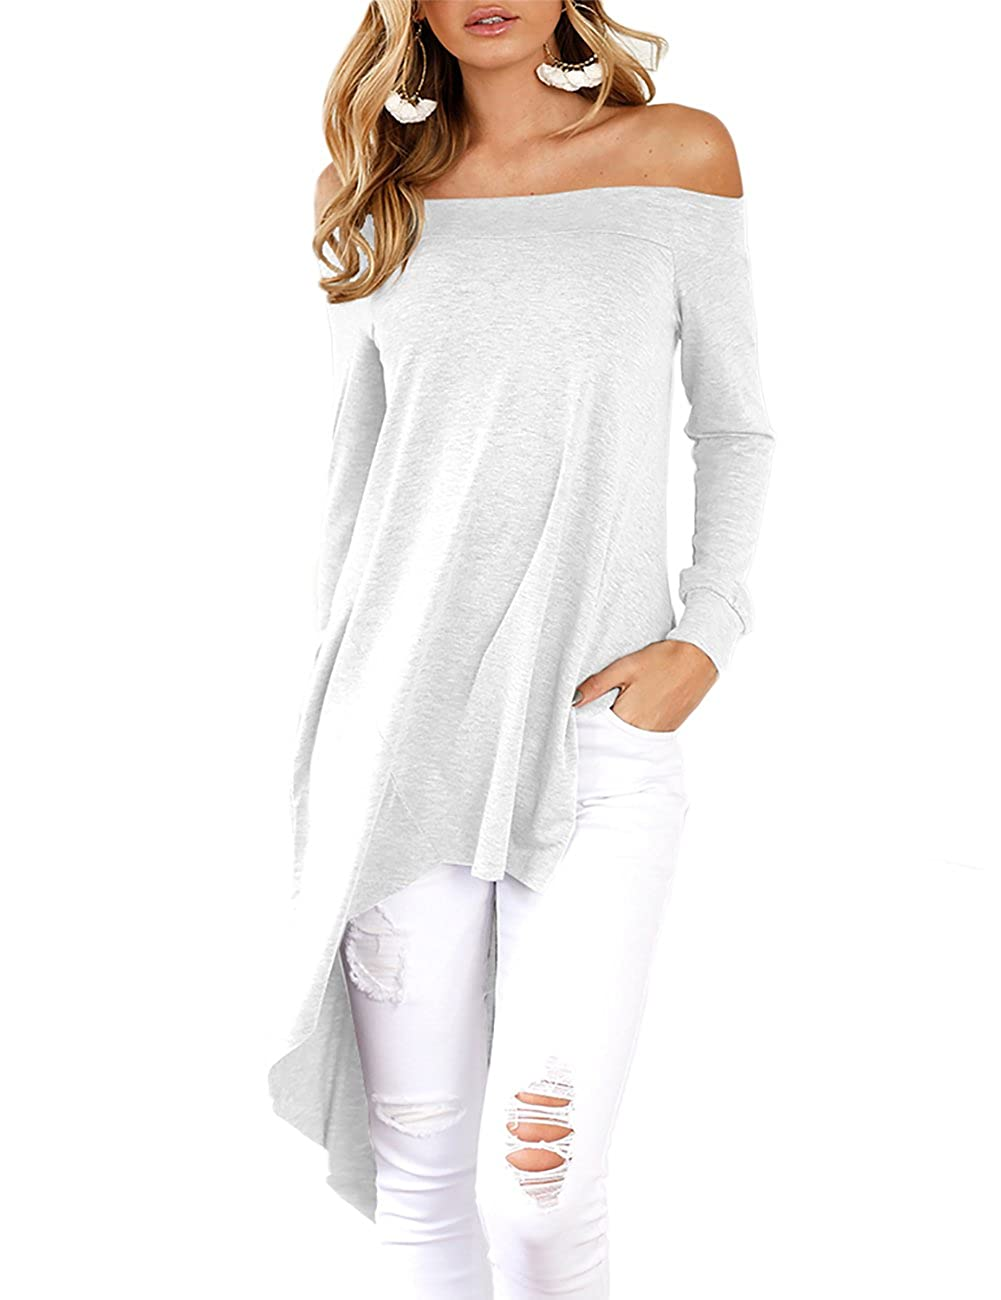 c30eaf34b55 Online Cheap wholesale Ninimour Womens Off Shoulder Tops Side Slit High Low  T Shirts Knits & Tees Suppliers